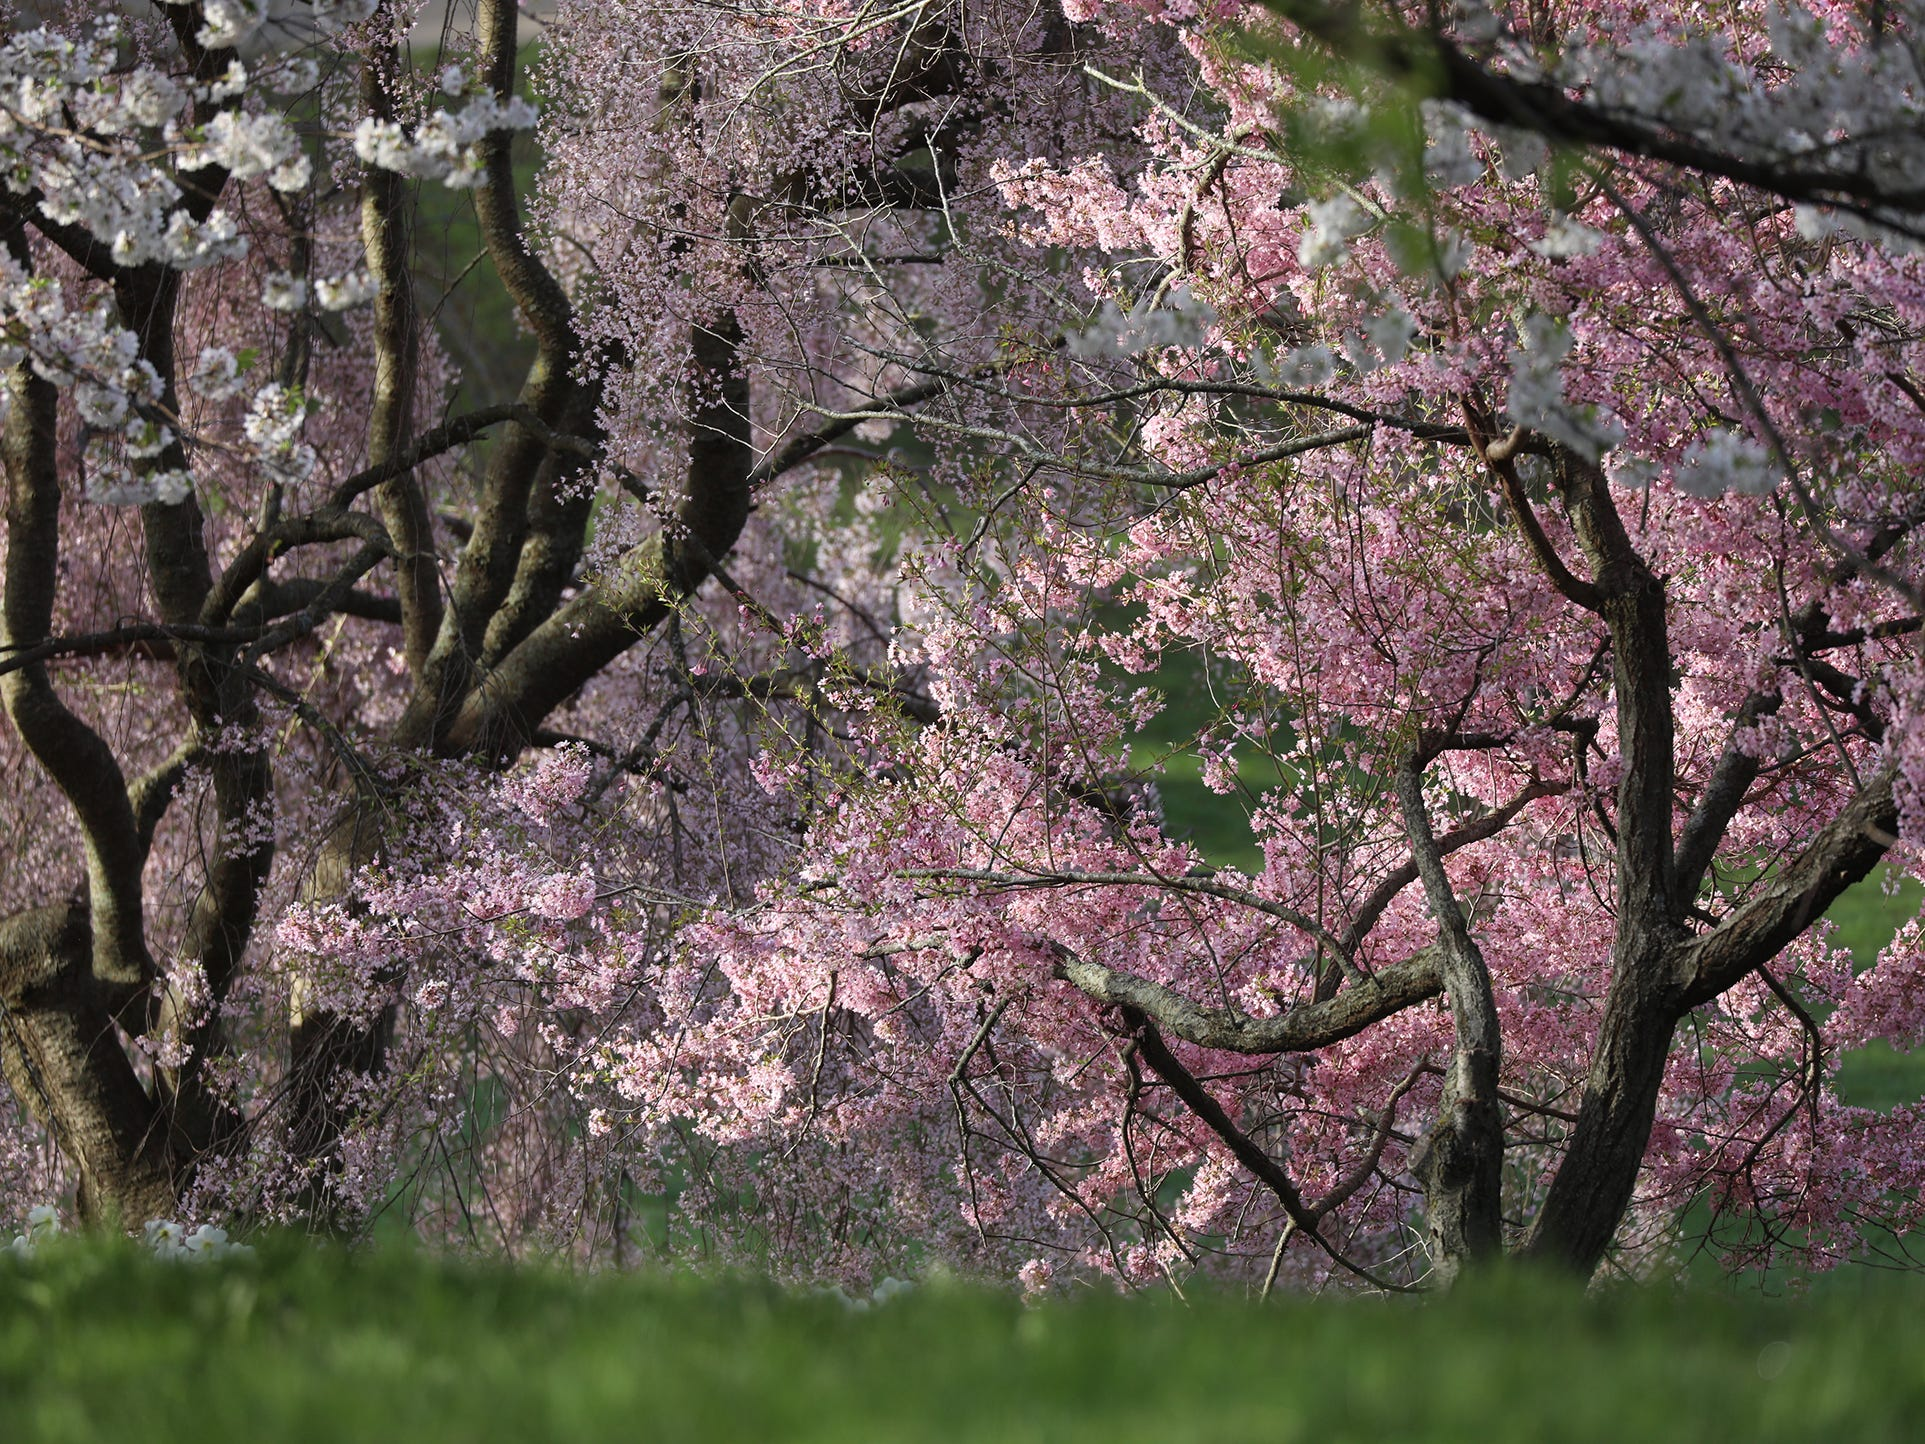 Some trees have already bloomed with their flowers.